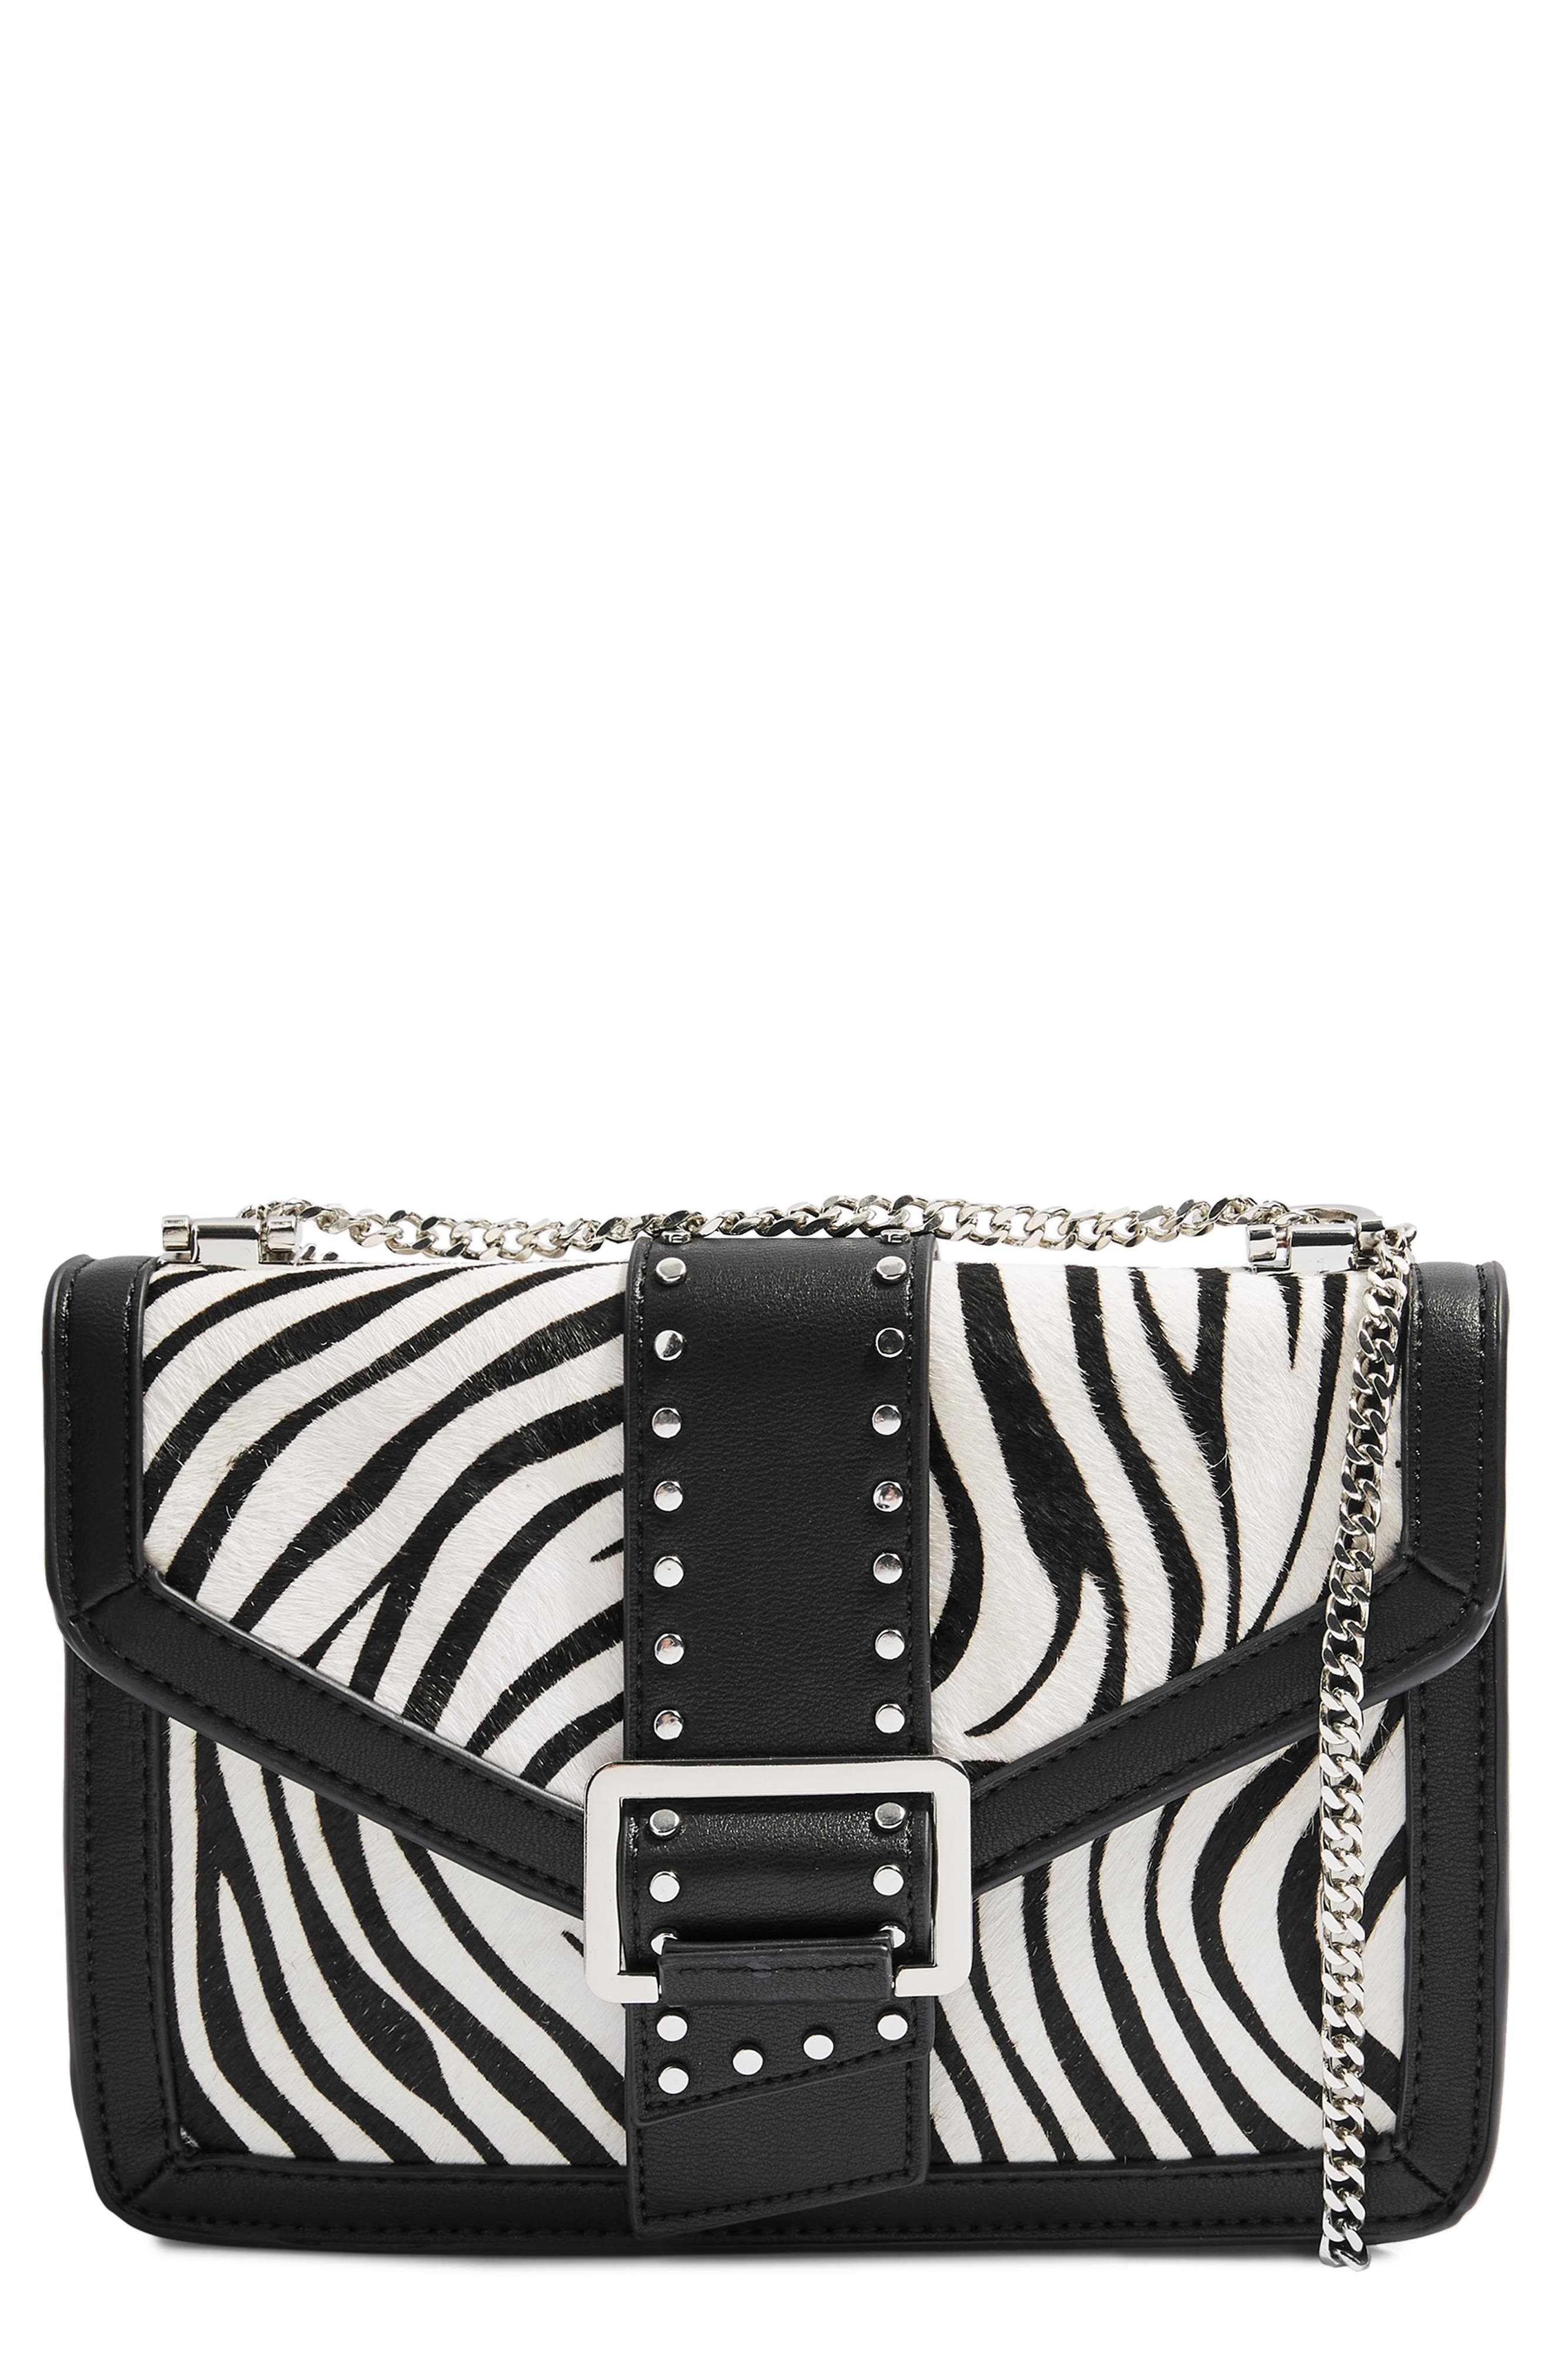 TOPSHOP Seema Studded Genuine Calf Hair Shoulder Bag, Main, color, 002